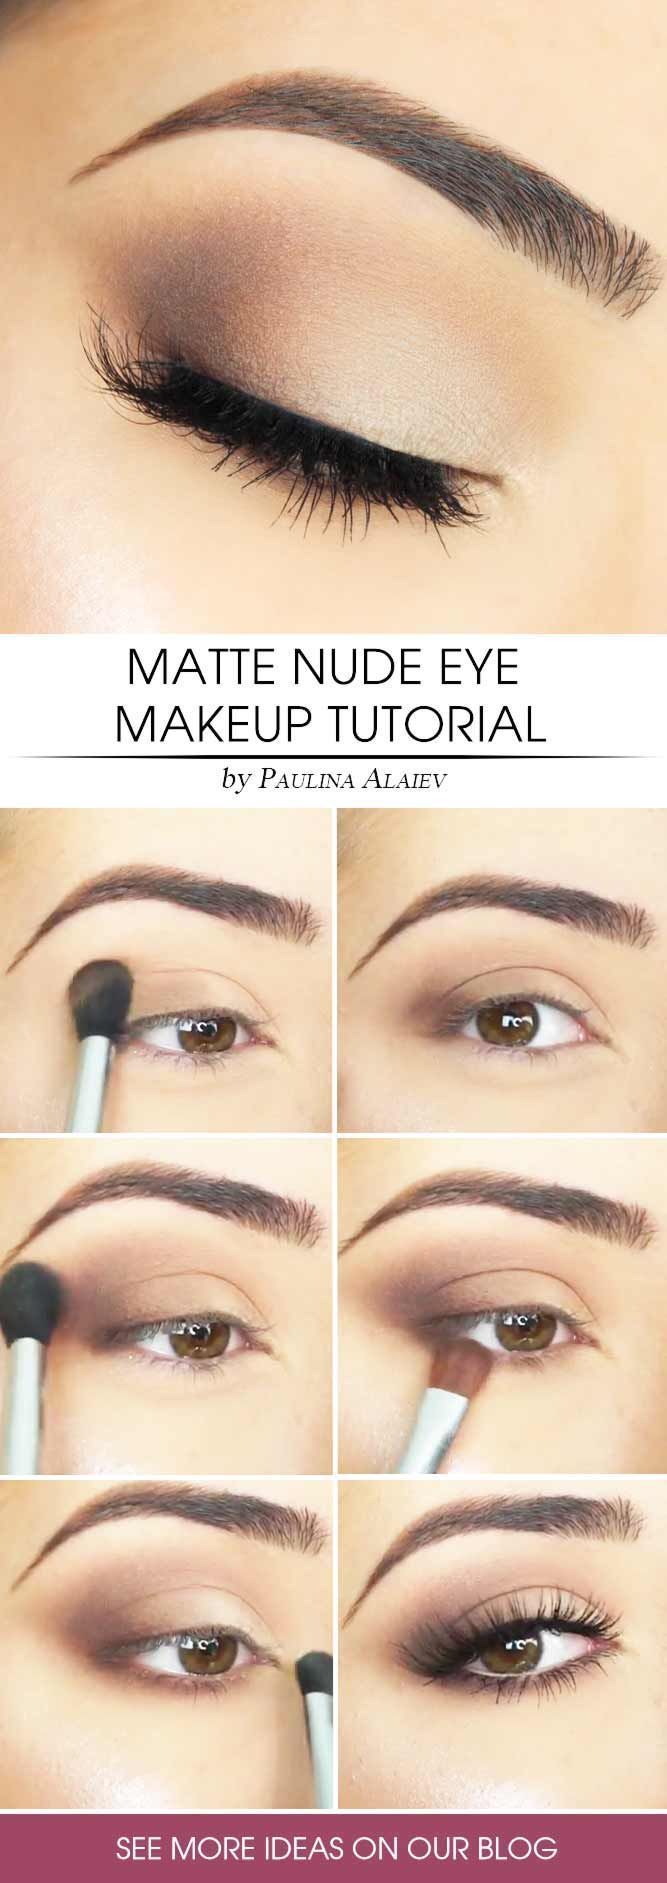 Matte Eyes Makeup Tutorial #eyesmakeup Nude makeup ideas for natural looks in a simple step by step tutorial with lipstick, eyeliner, and contours. #nudemakeup #everydaymakeup #makeup #hairmakeup